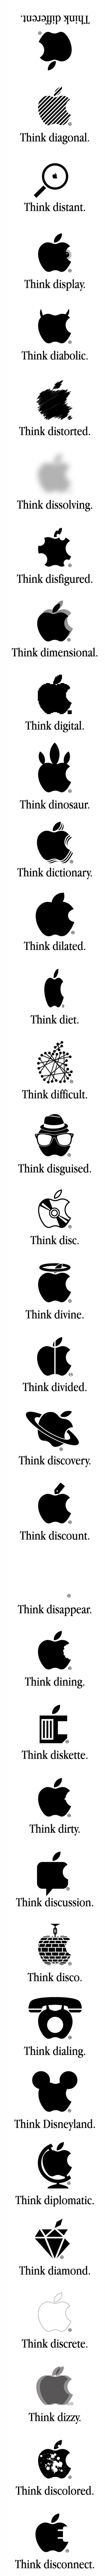 Think different... really different.